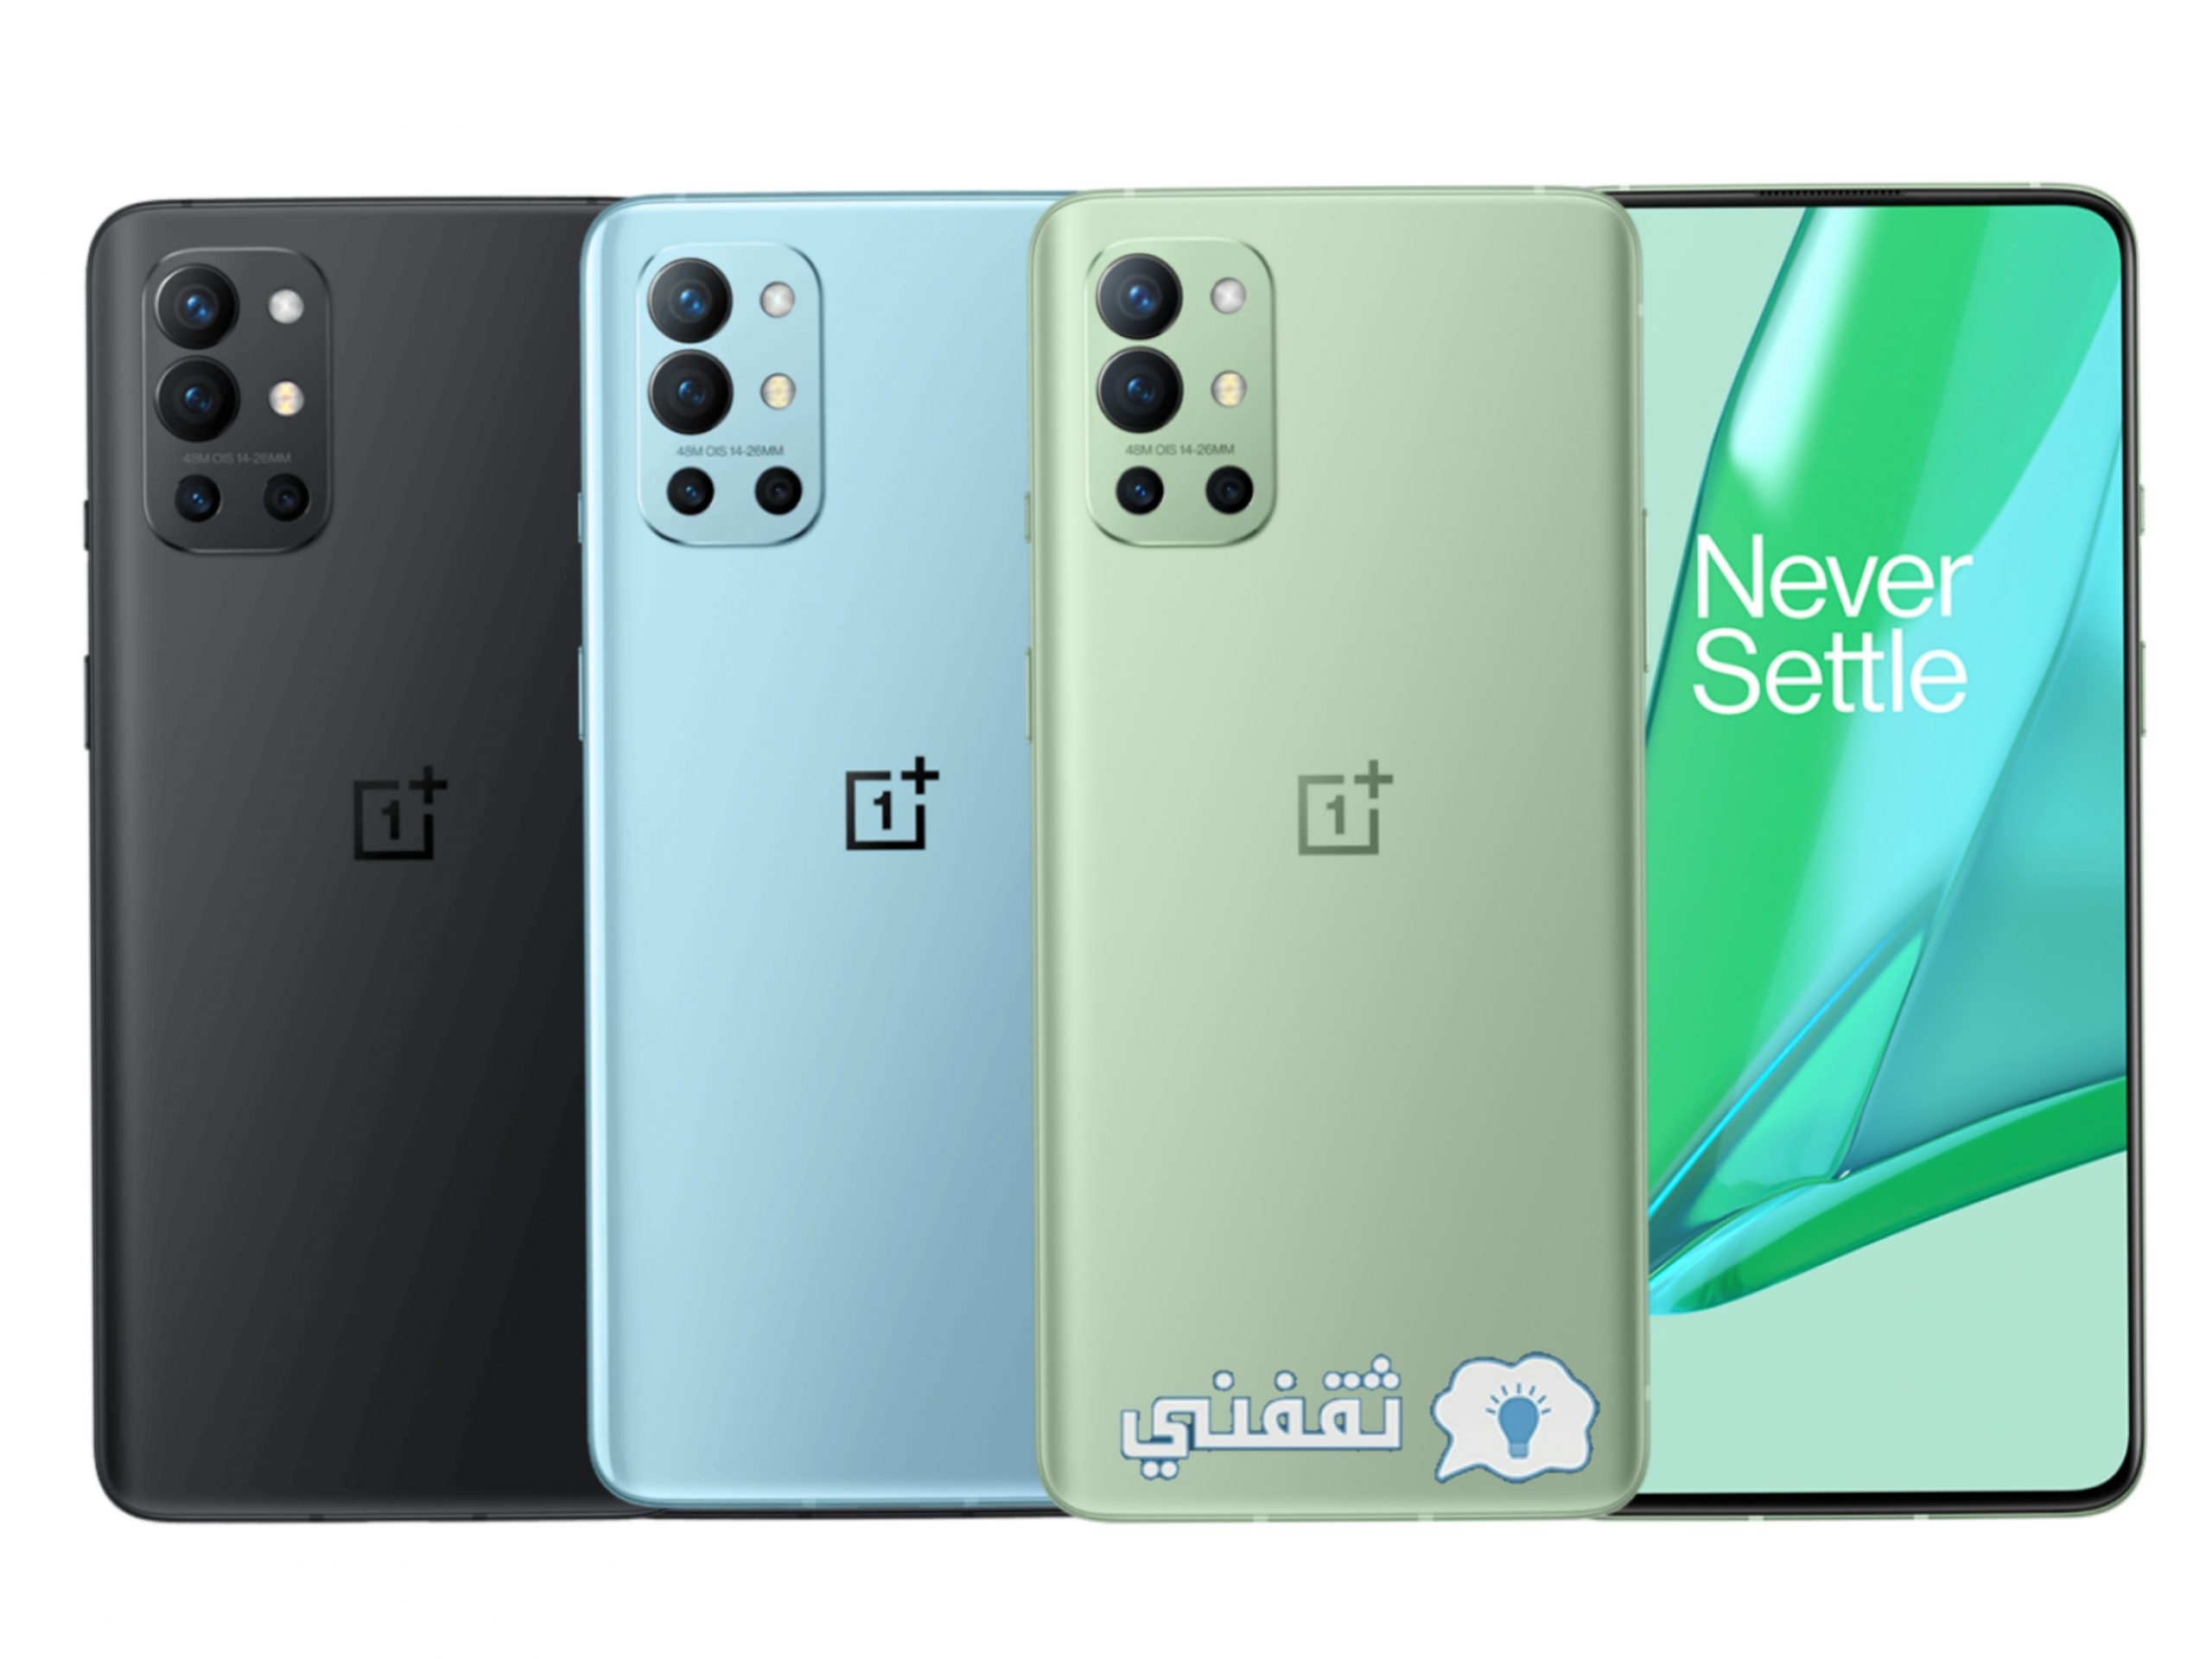 OnePlus 9R colors